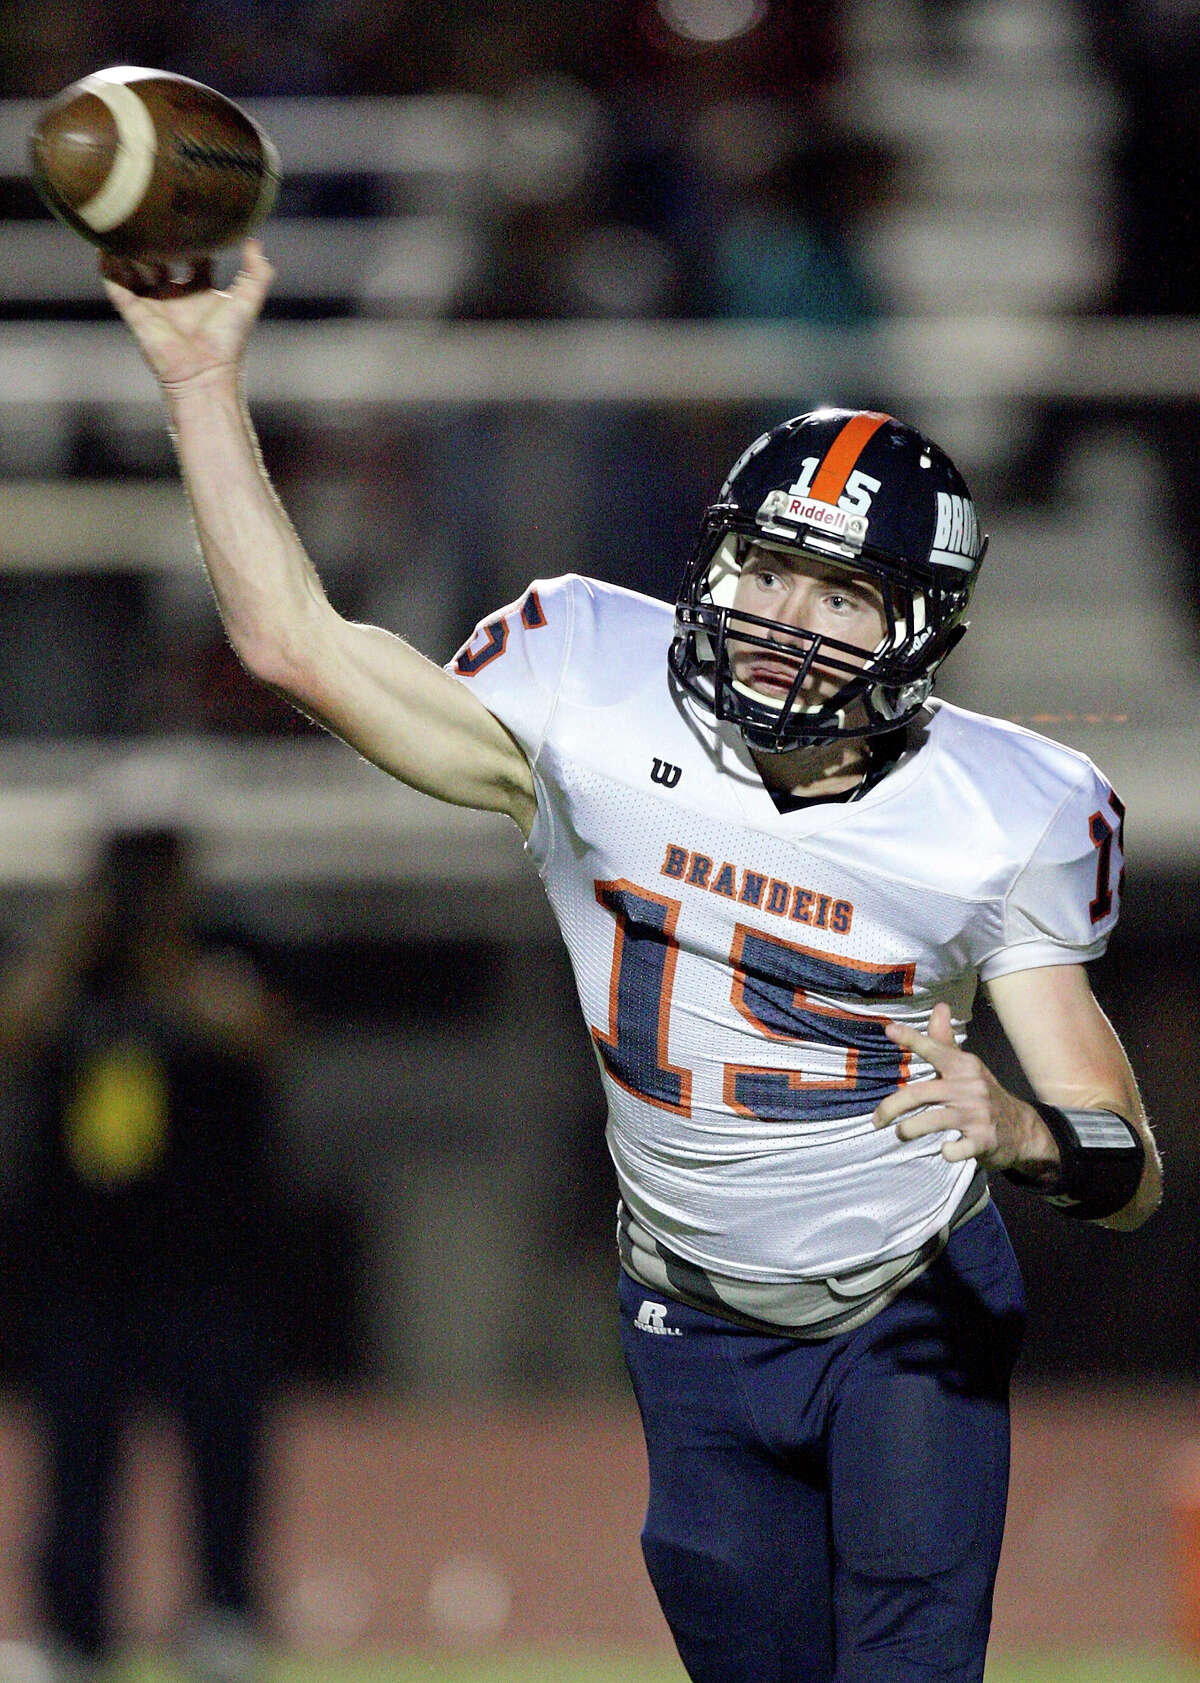 Brandeis' Colbie Price passes against Del Rio during first half action Friday Nov. 30, 2012 at Eagle Pass ISD Stadium in Eagle Pass, Tx.